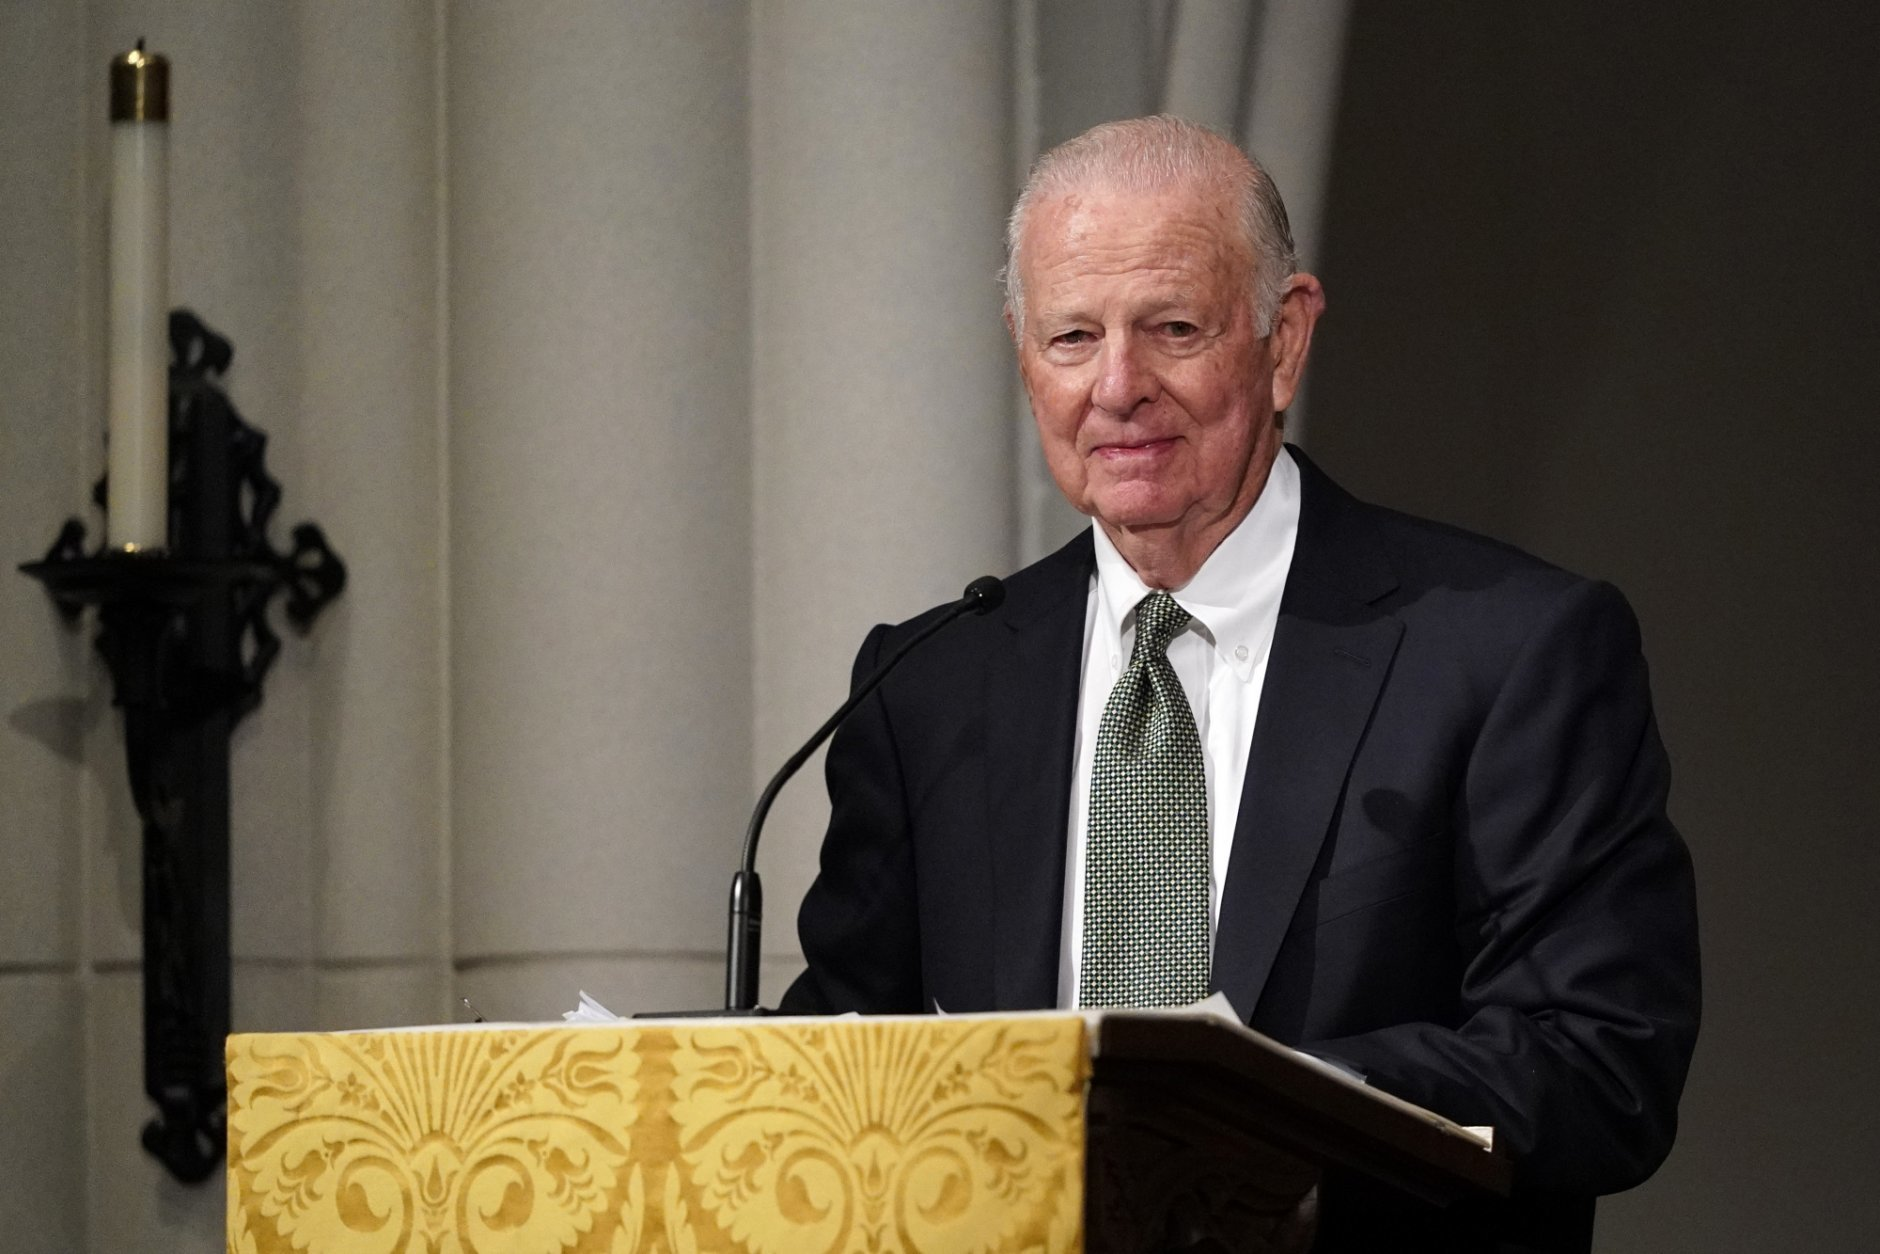 Former Secretary of State James Baker III gives a eulogy during the funeral for former President George H.W. Bush at St. Martin's Episcopal Church, Thursday, Dec. 6, 2018, in Houston. (AP Photo/David J. Phillip, Pool)